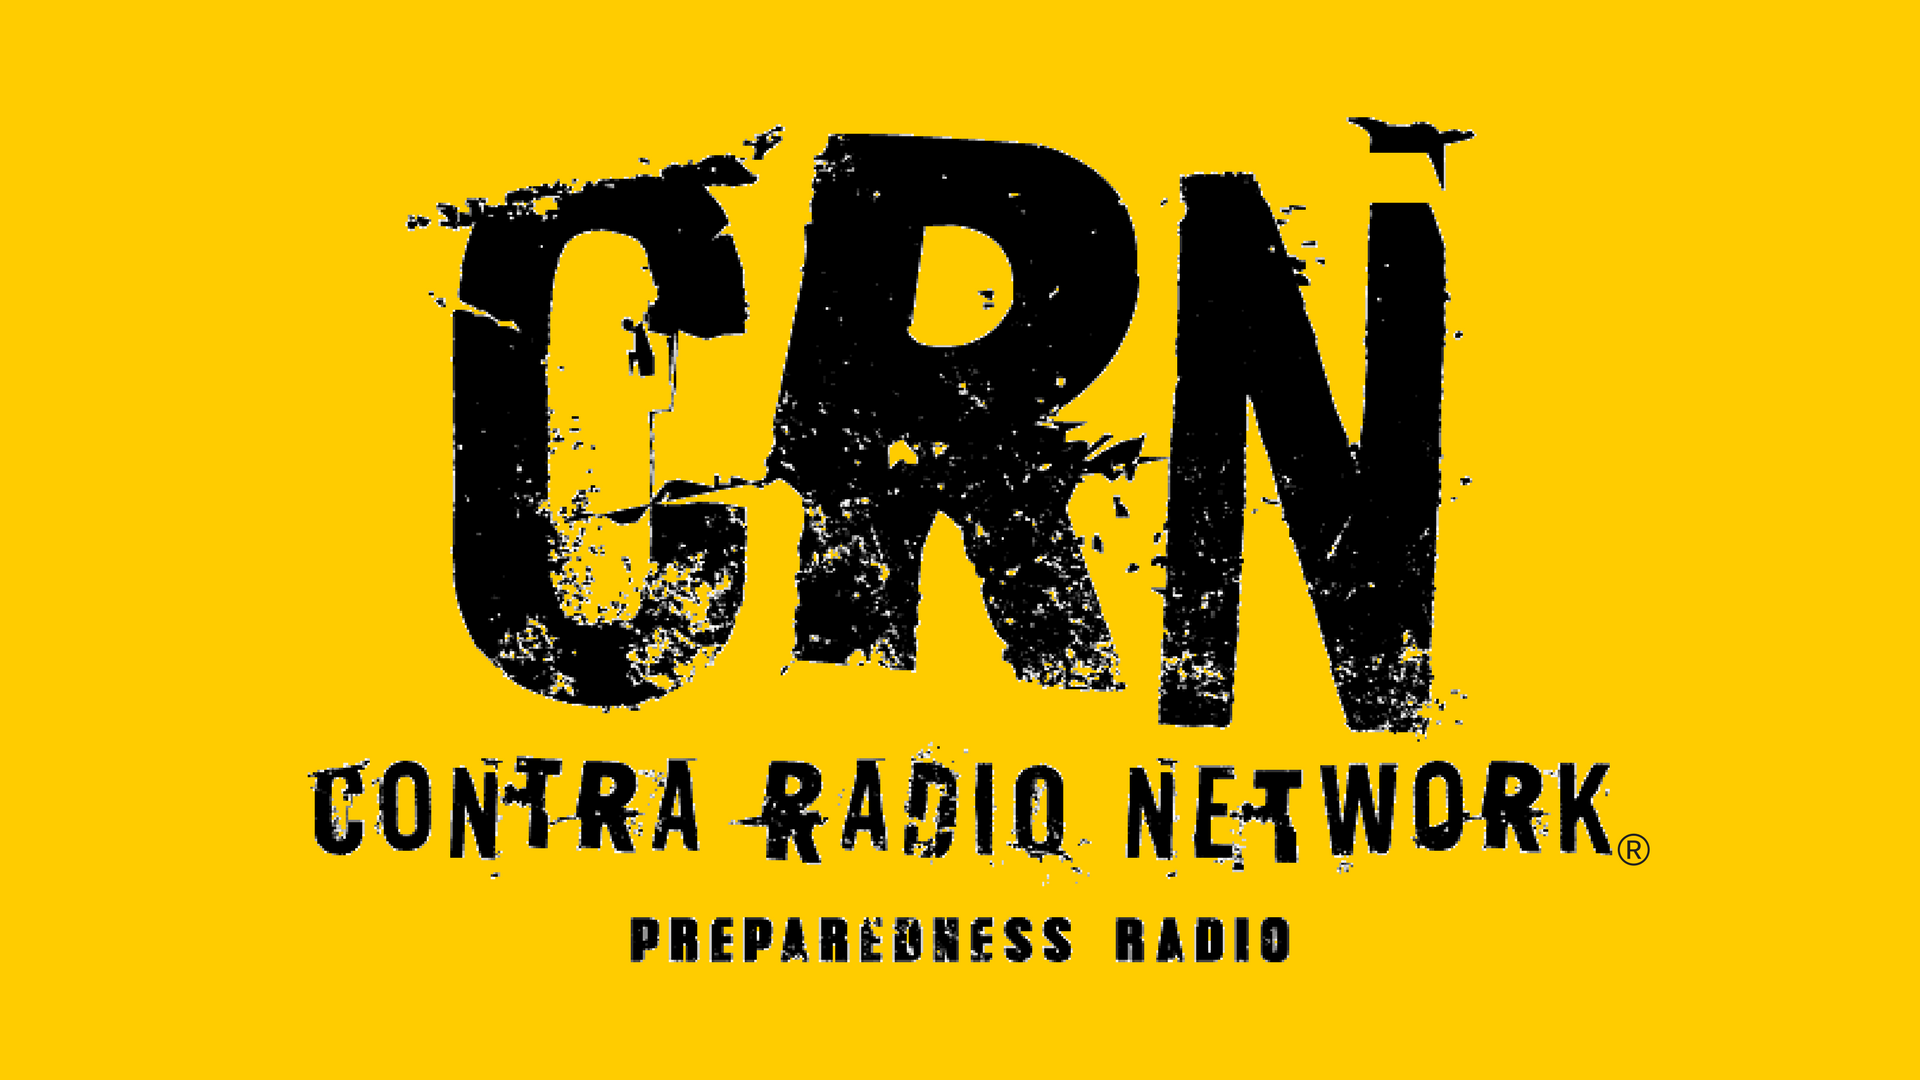 Supporting Contra Radio Network